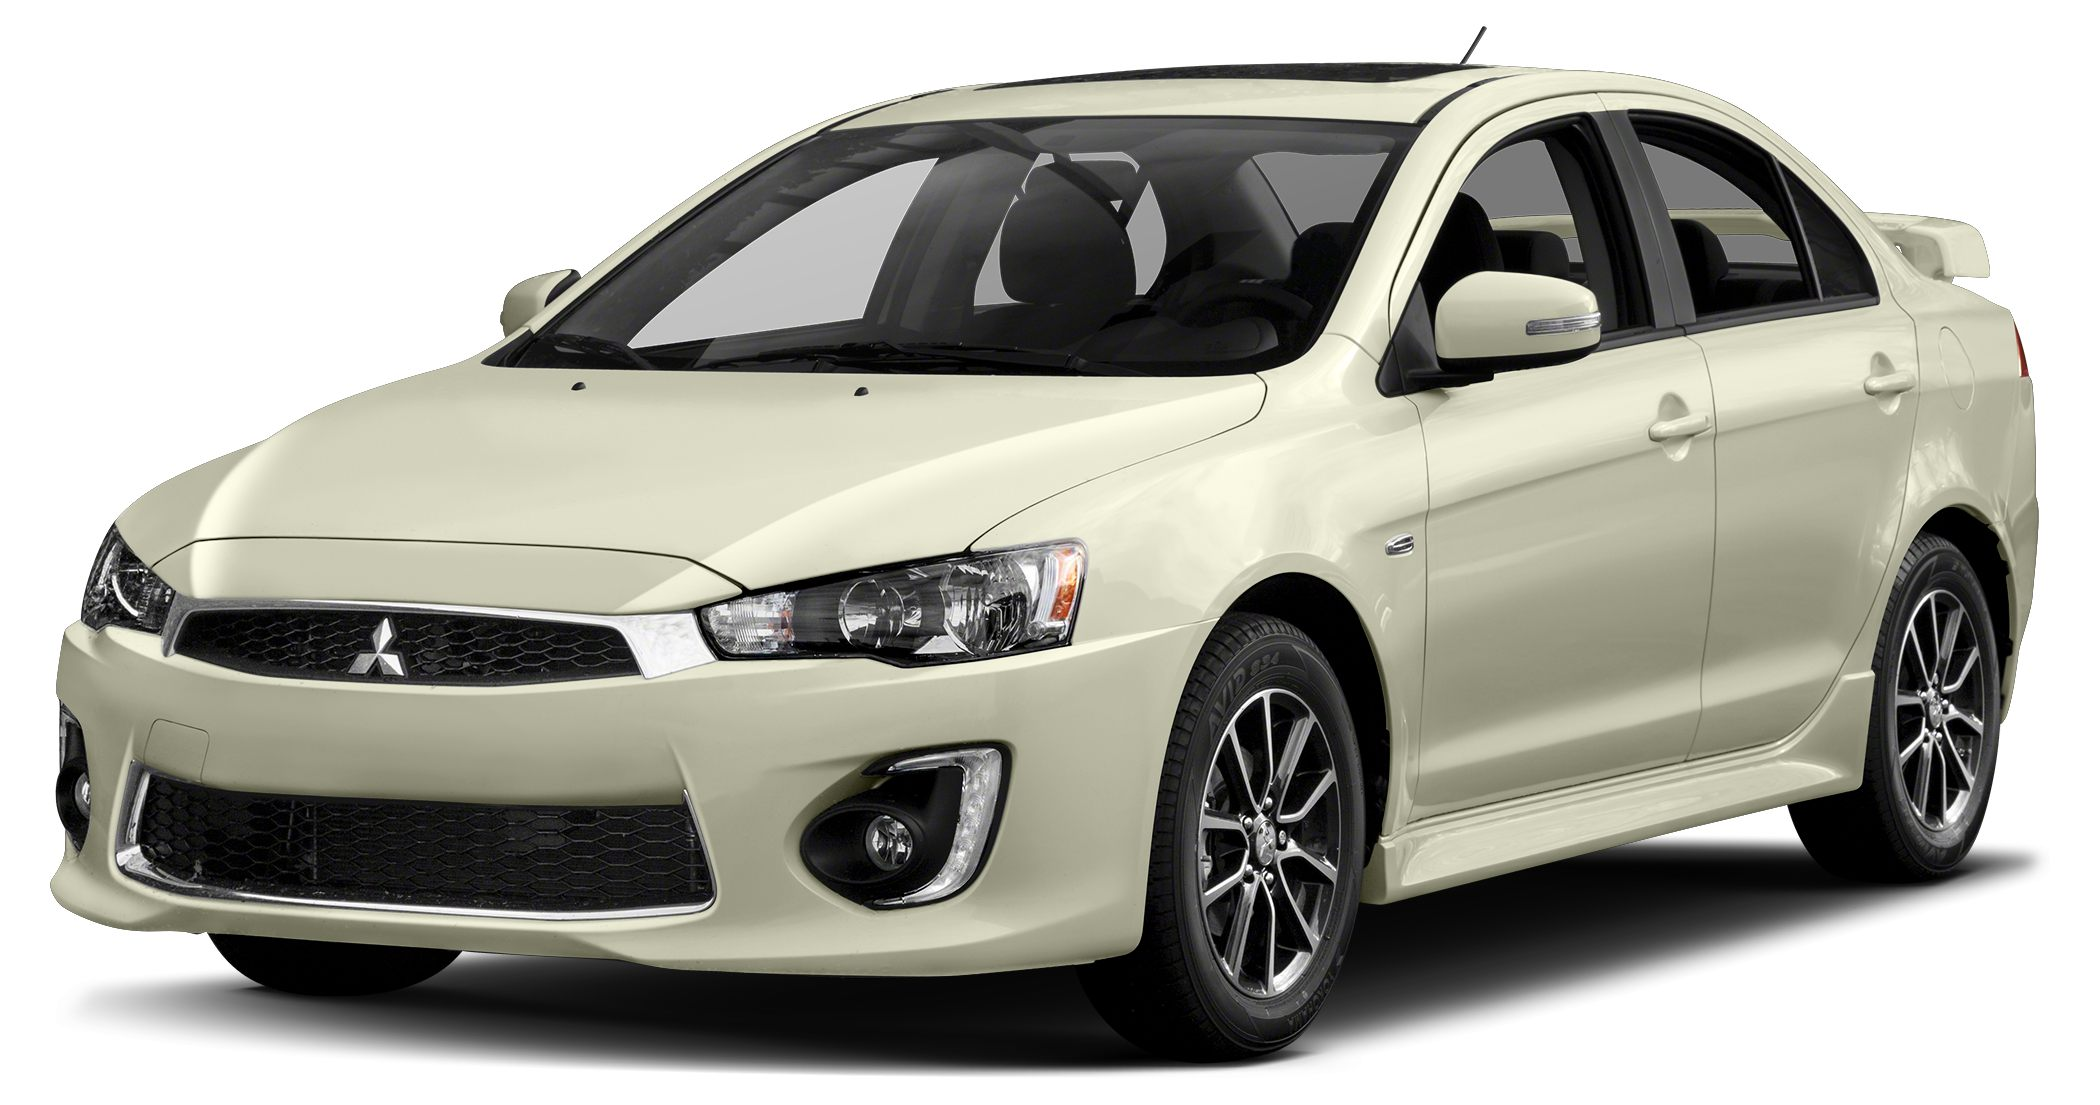 2016 Mitsubishi Lancer ES THIS VEHICLE COMES WITH OUR BEST PRICE GUARANTEE FIND A BETTER ON A SIM